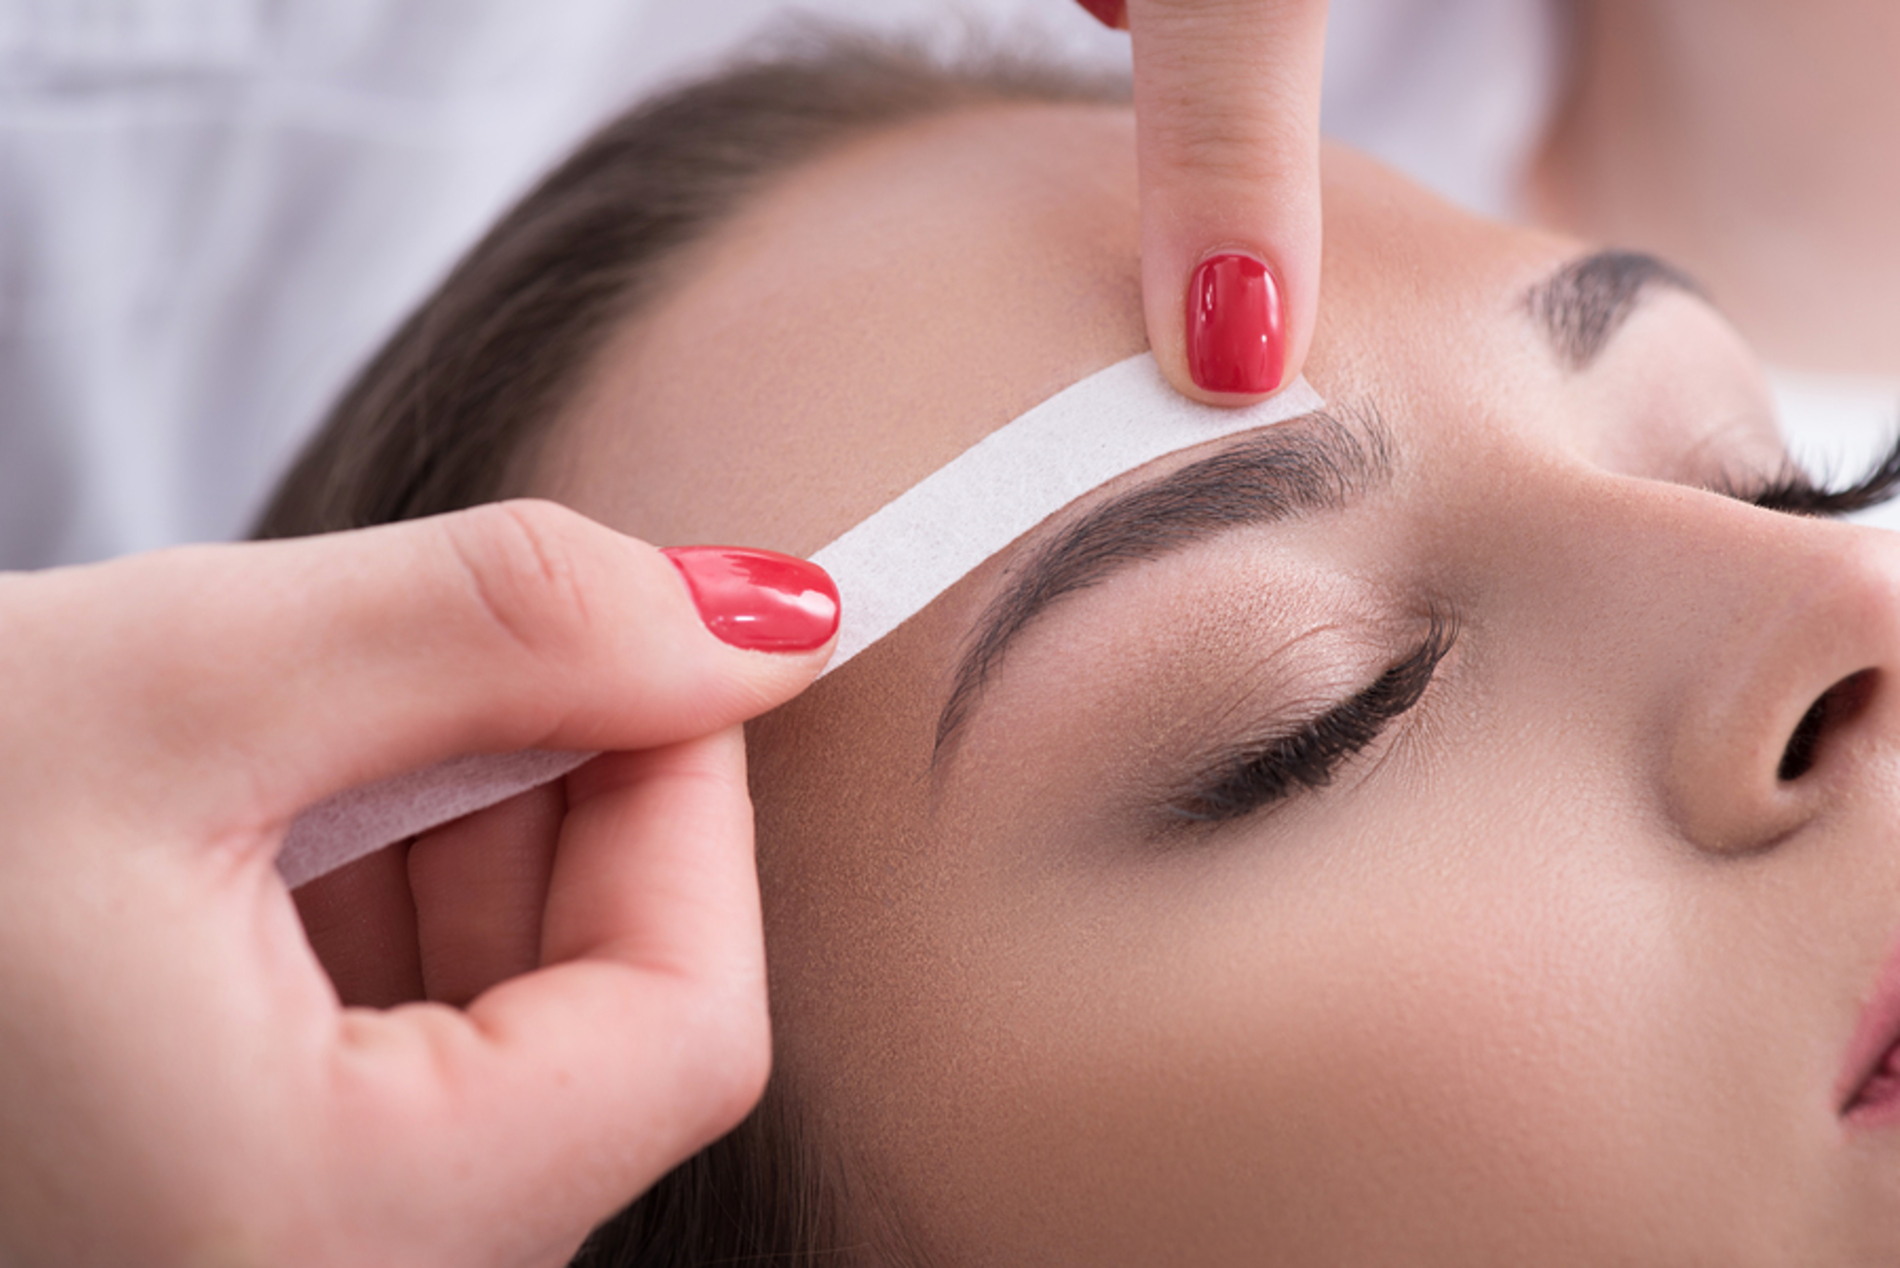 Woman having her eyebrow waxed.